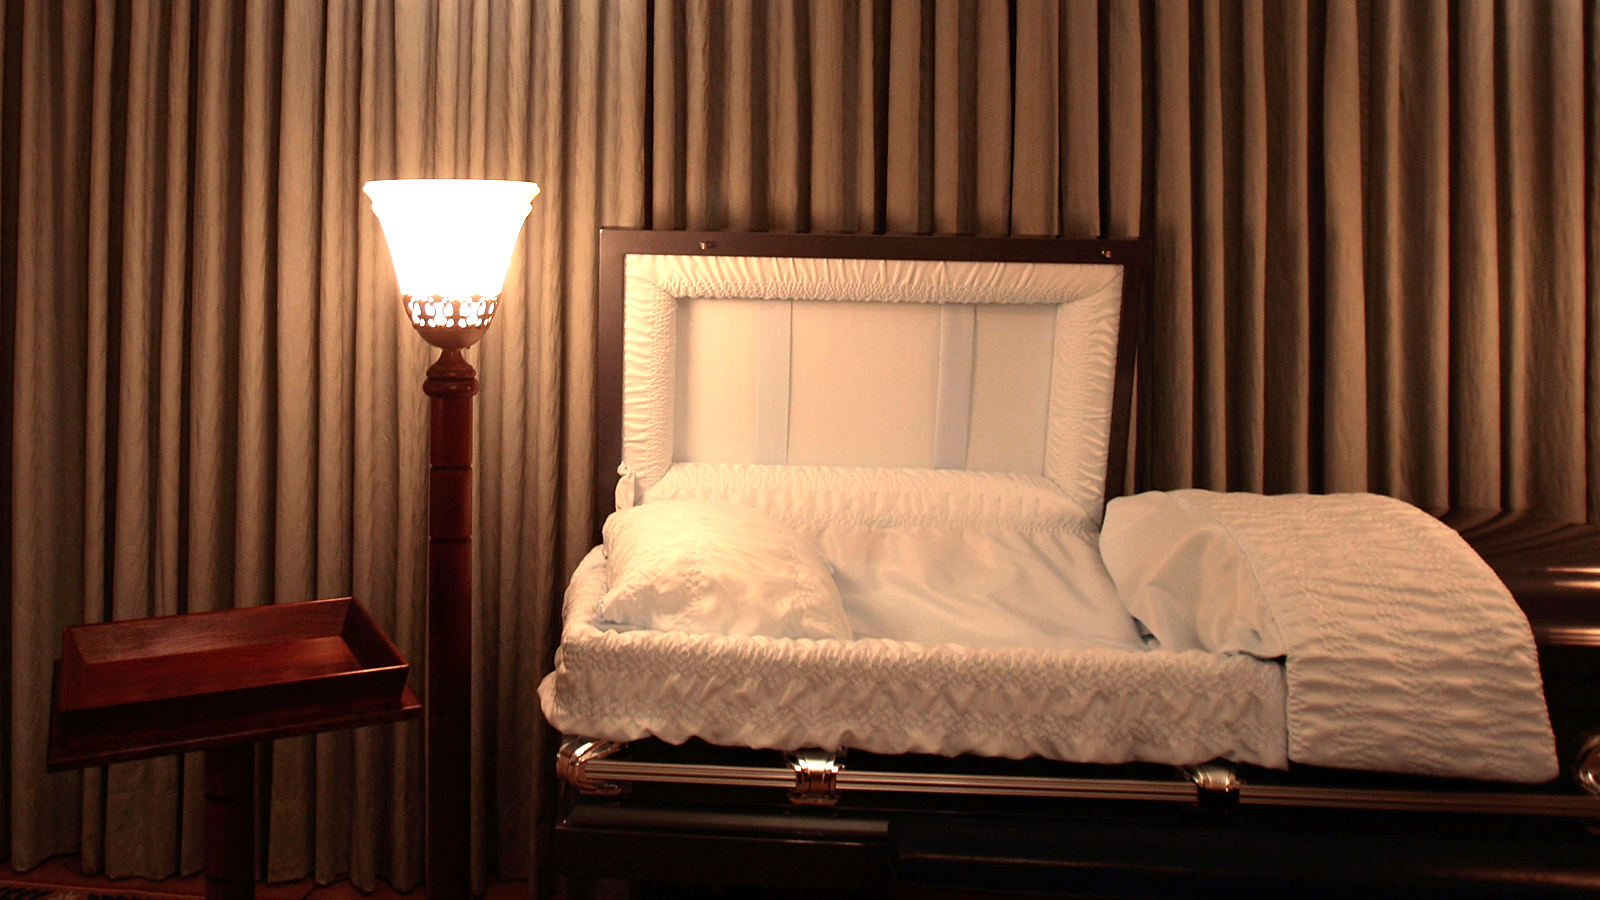 A file image of a coffin.